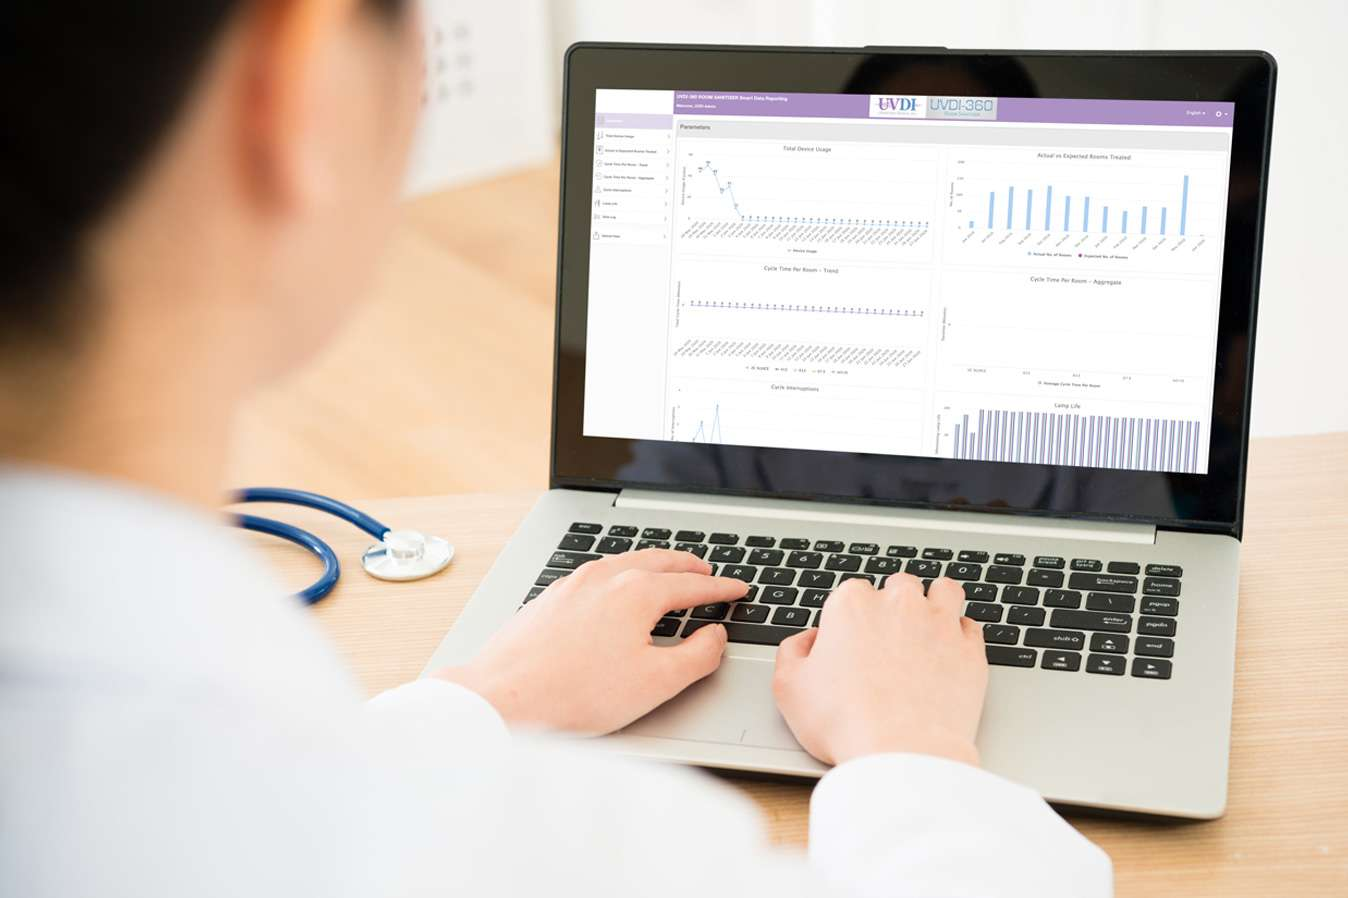 Dr viewing Smart Data on Laptop